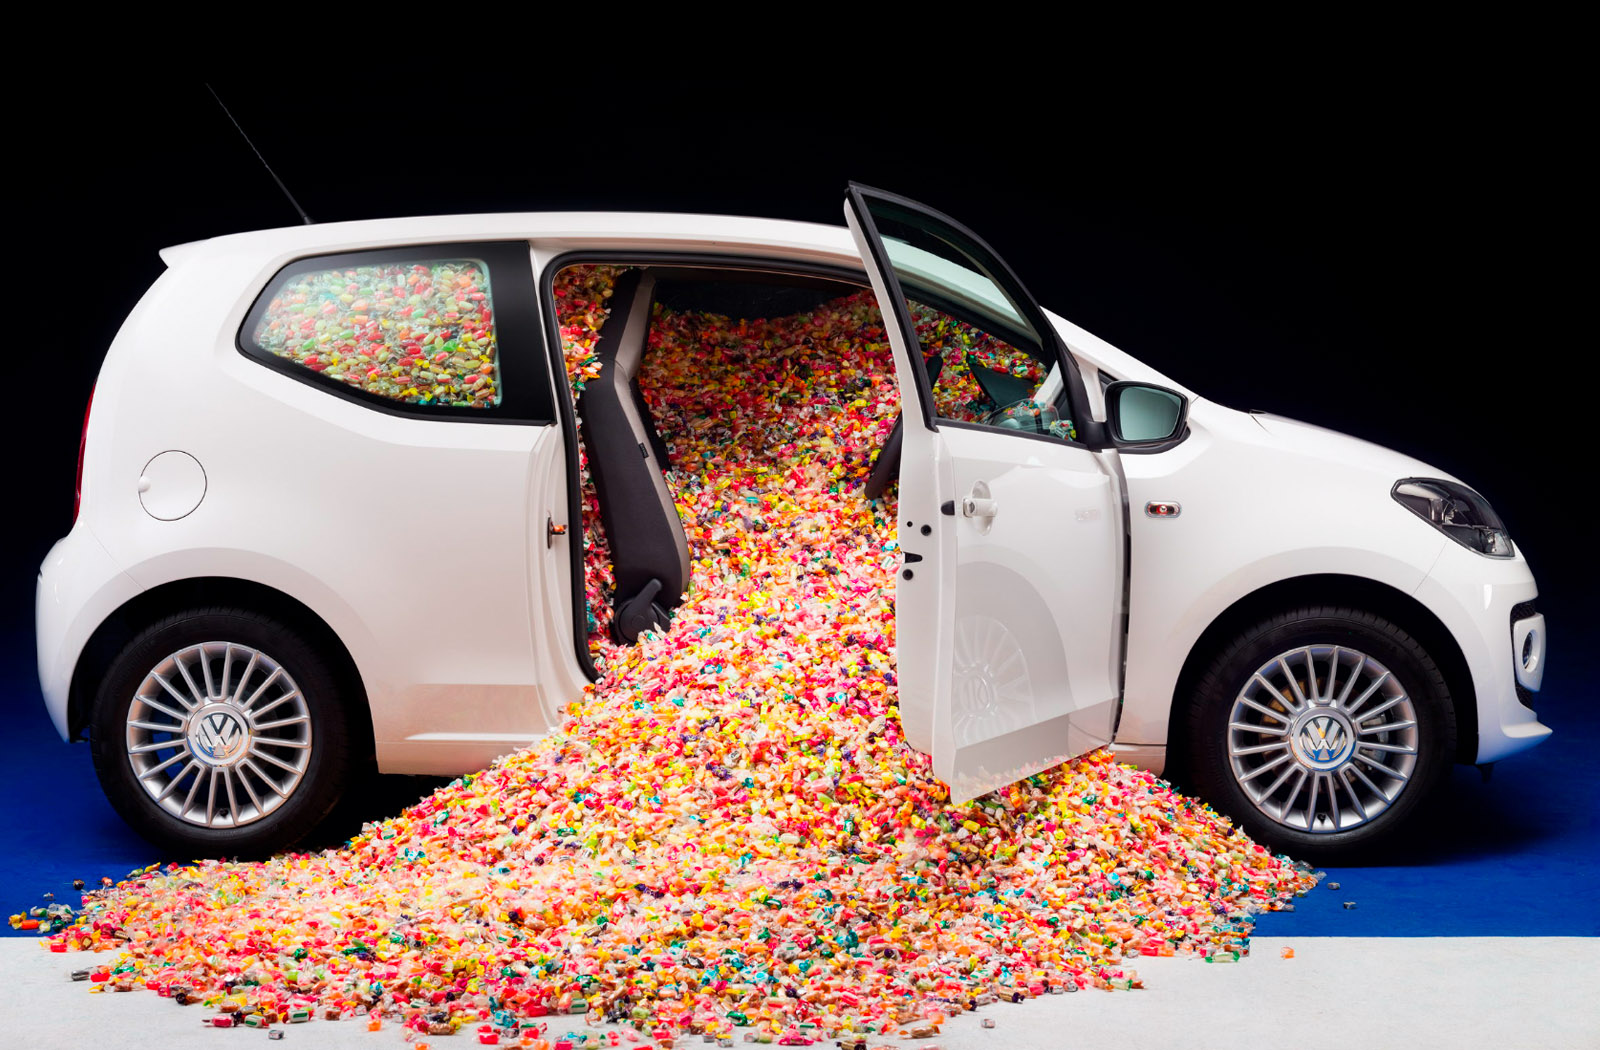 Volkswagen Up! Full of Sweets